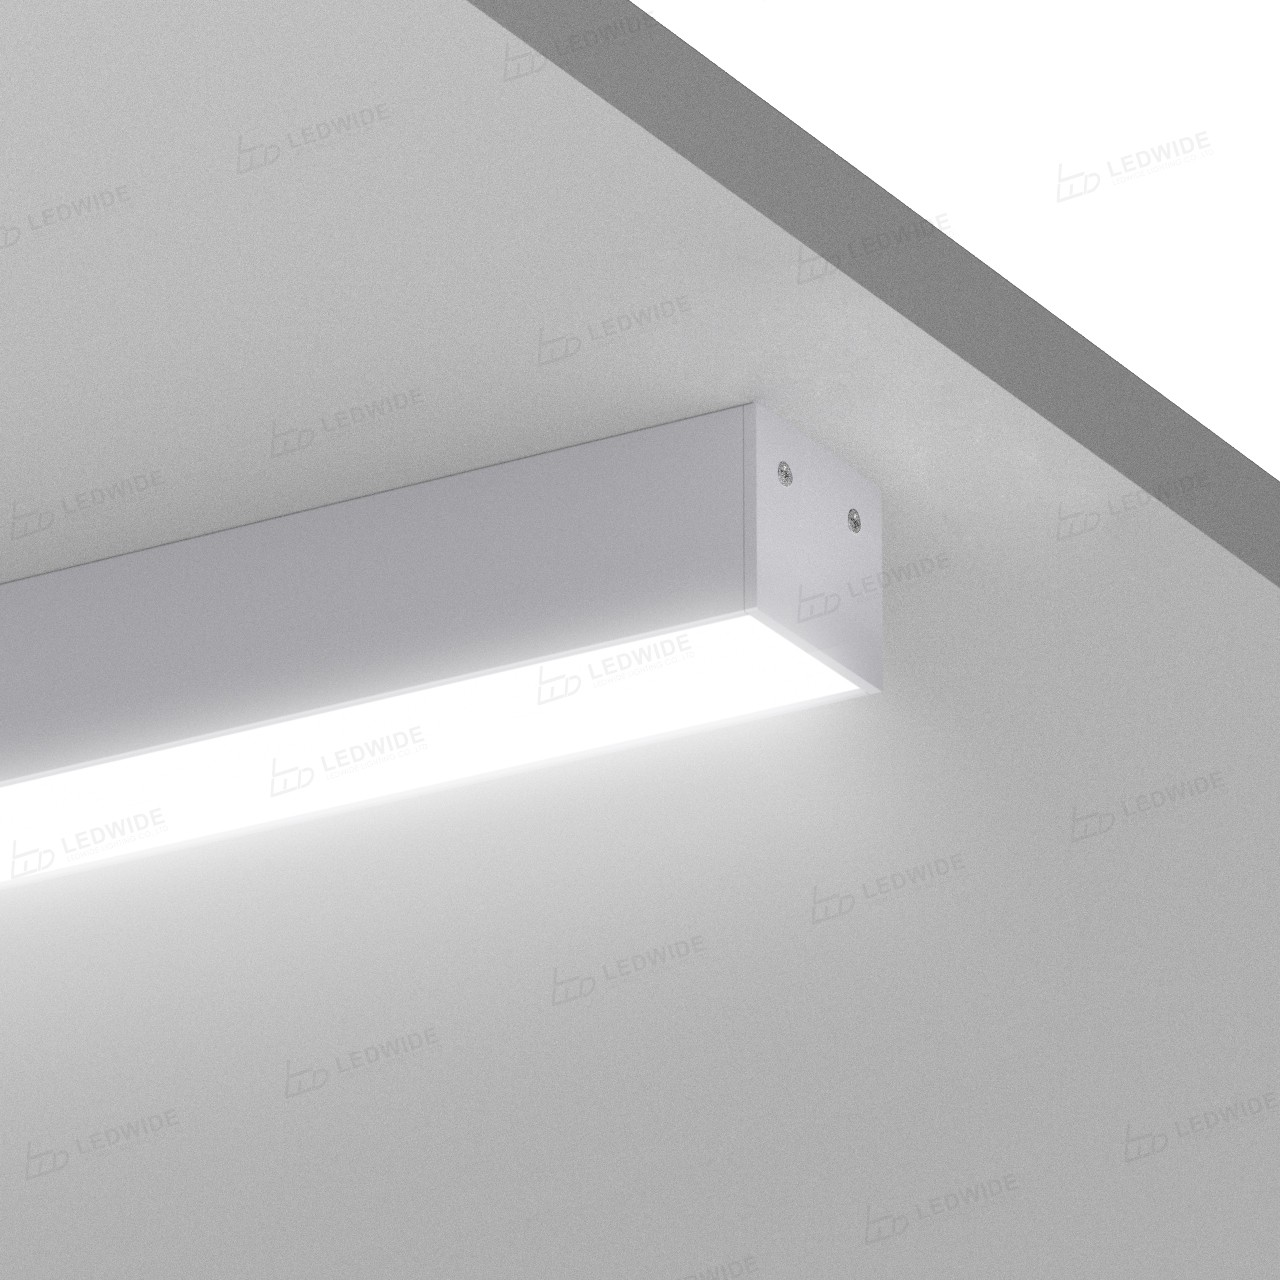 AT16-11 Surface square led profile 19.5x17.35mm Manufacturers, AT16-11 Surface square led profile 19.5x17.35mm Factory, Supply AT16-11 Surface square led profile 19.5x17.35mm